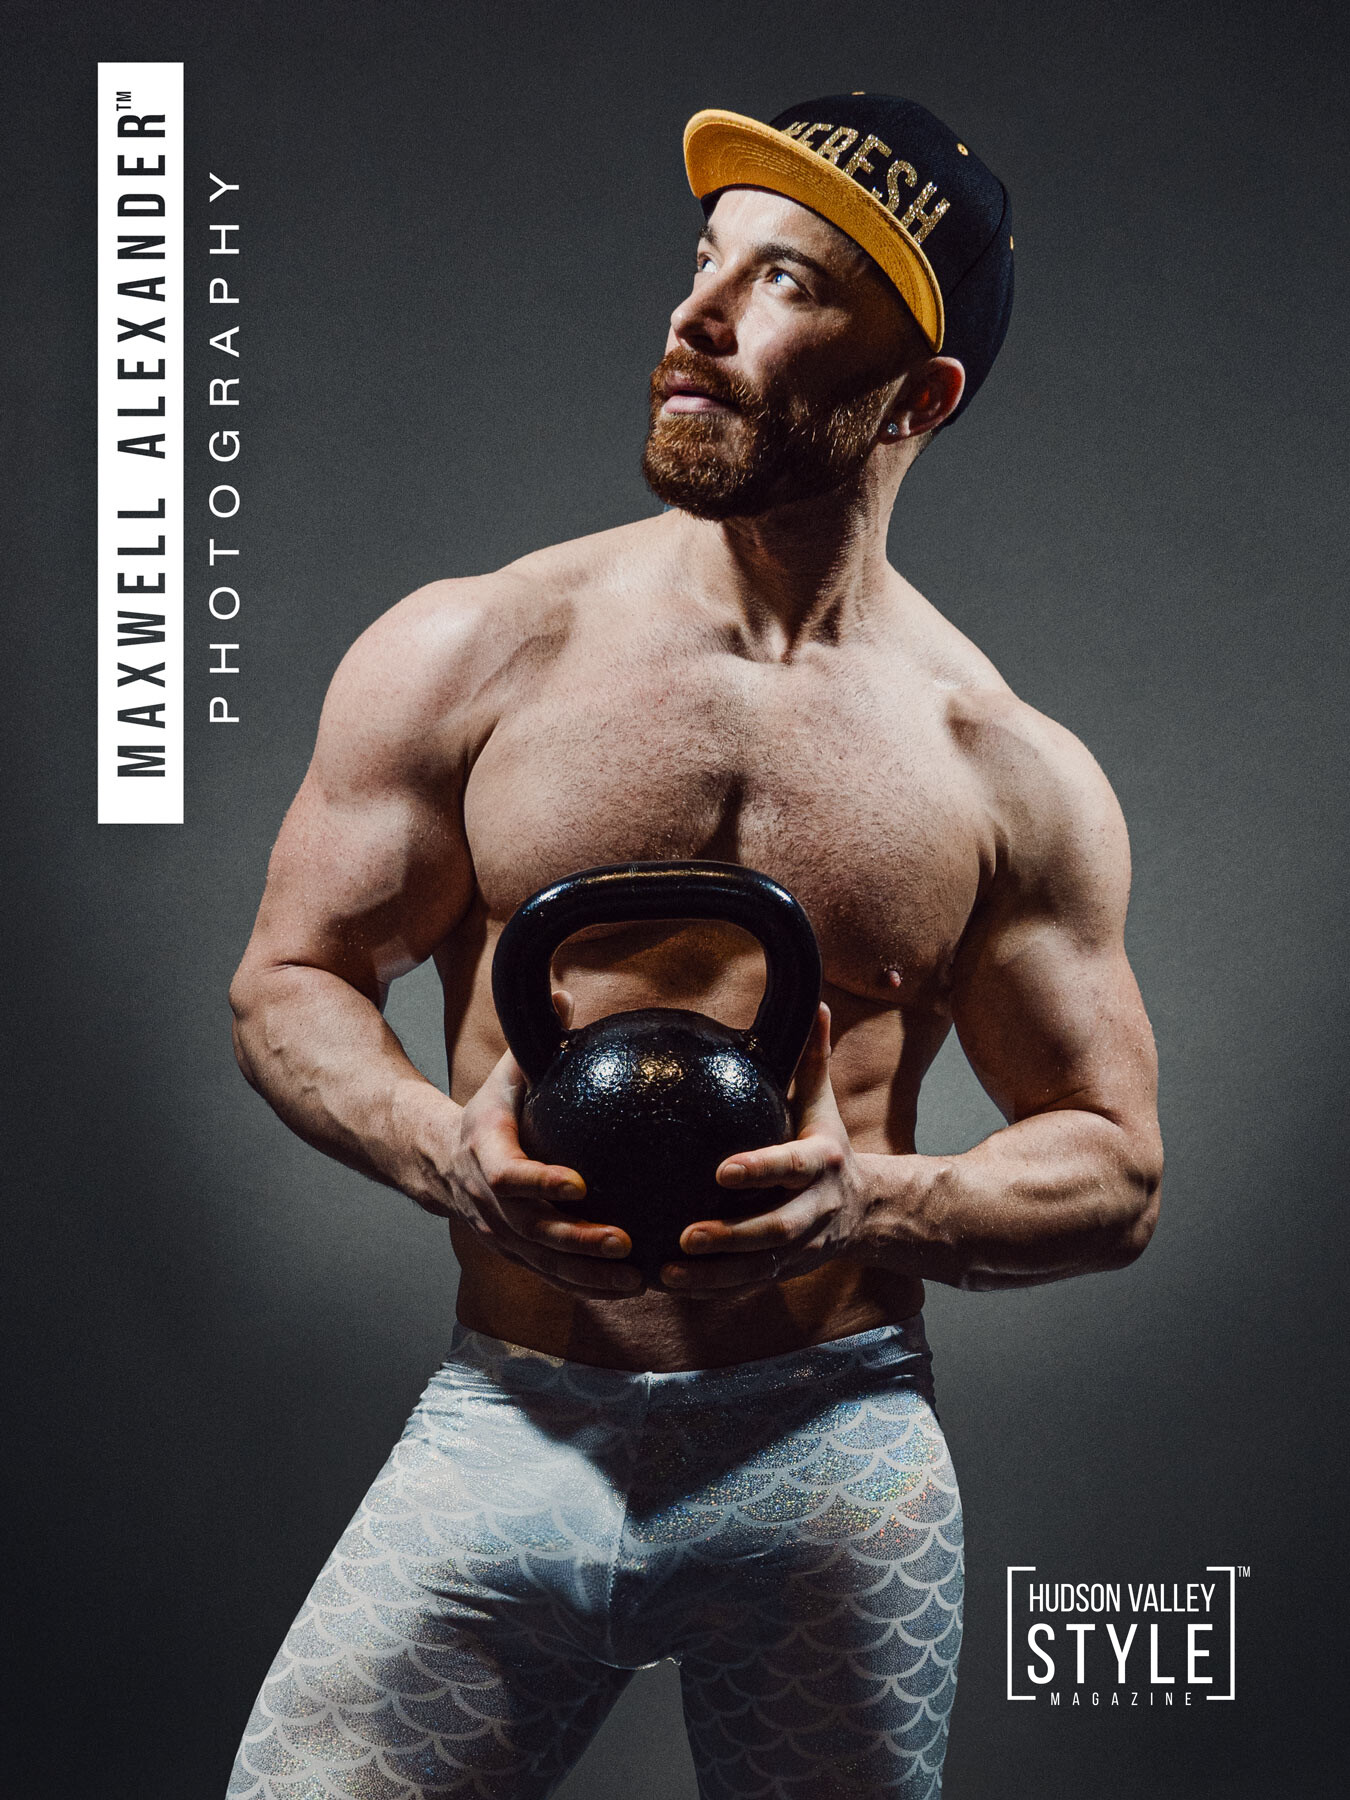 Top 5 Mistakes That People Make With Kettlebells – by Maxwell Alexander, MA, BFA, Certified Elite Fitness Trainer, Certified Bodybuilding Coach, Certified Sports Nutritionist